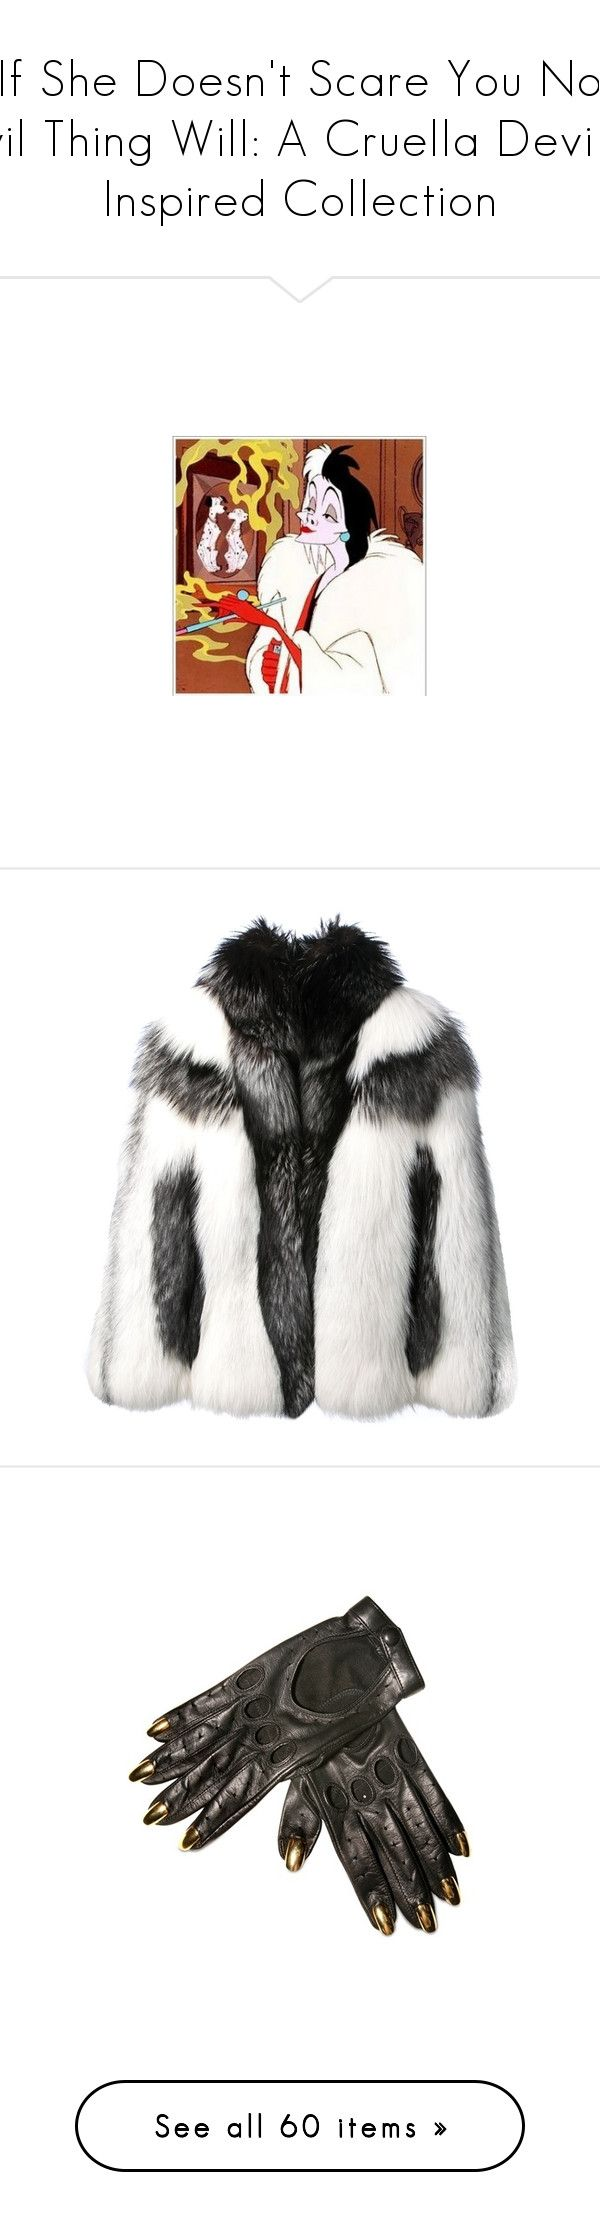 """If She Doesn't Scare You No Evil Thing Will: A Cruella Deville Inspired Collection"" by mygypsyheart ❤ liked on Polyvore featuring outerwear, coats, jackets, fur, alexander mcqueen coat, ivory fur coat, short fur coat, white winter coat, long sleeve coat and accessories"